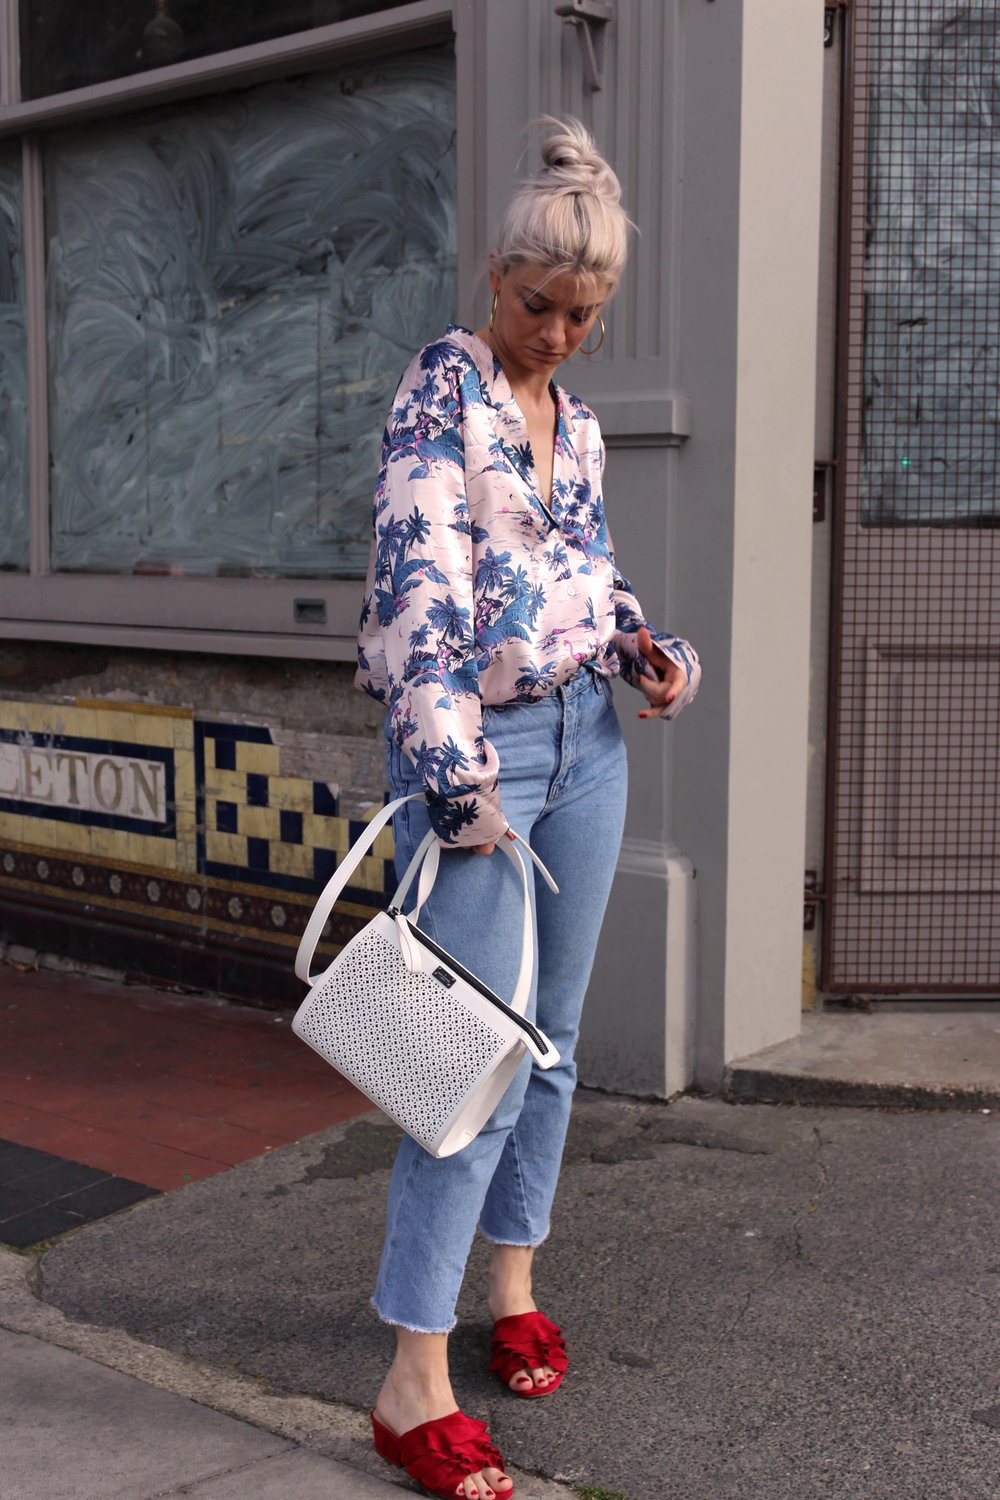 pyjama silk shirt, blue wash denim jeans, red ruffle shoes, white handbag, northern magpie